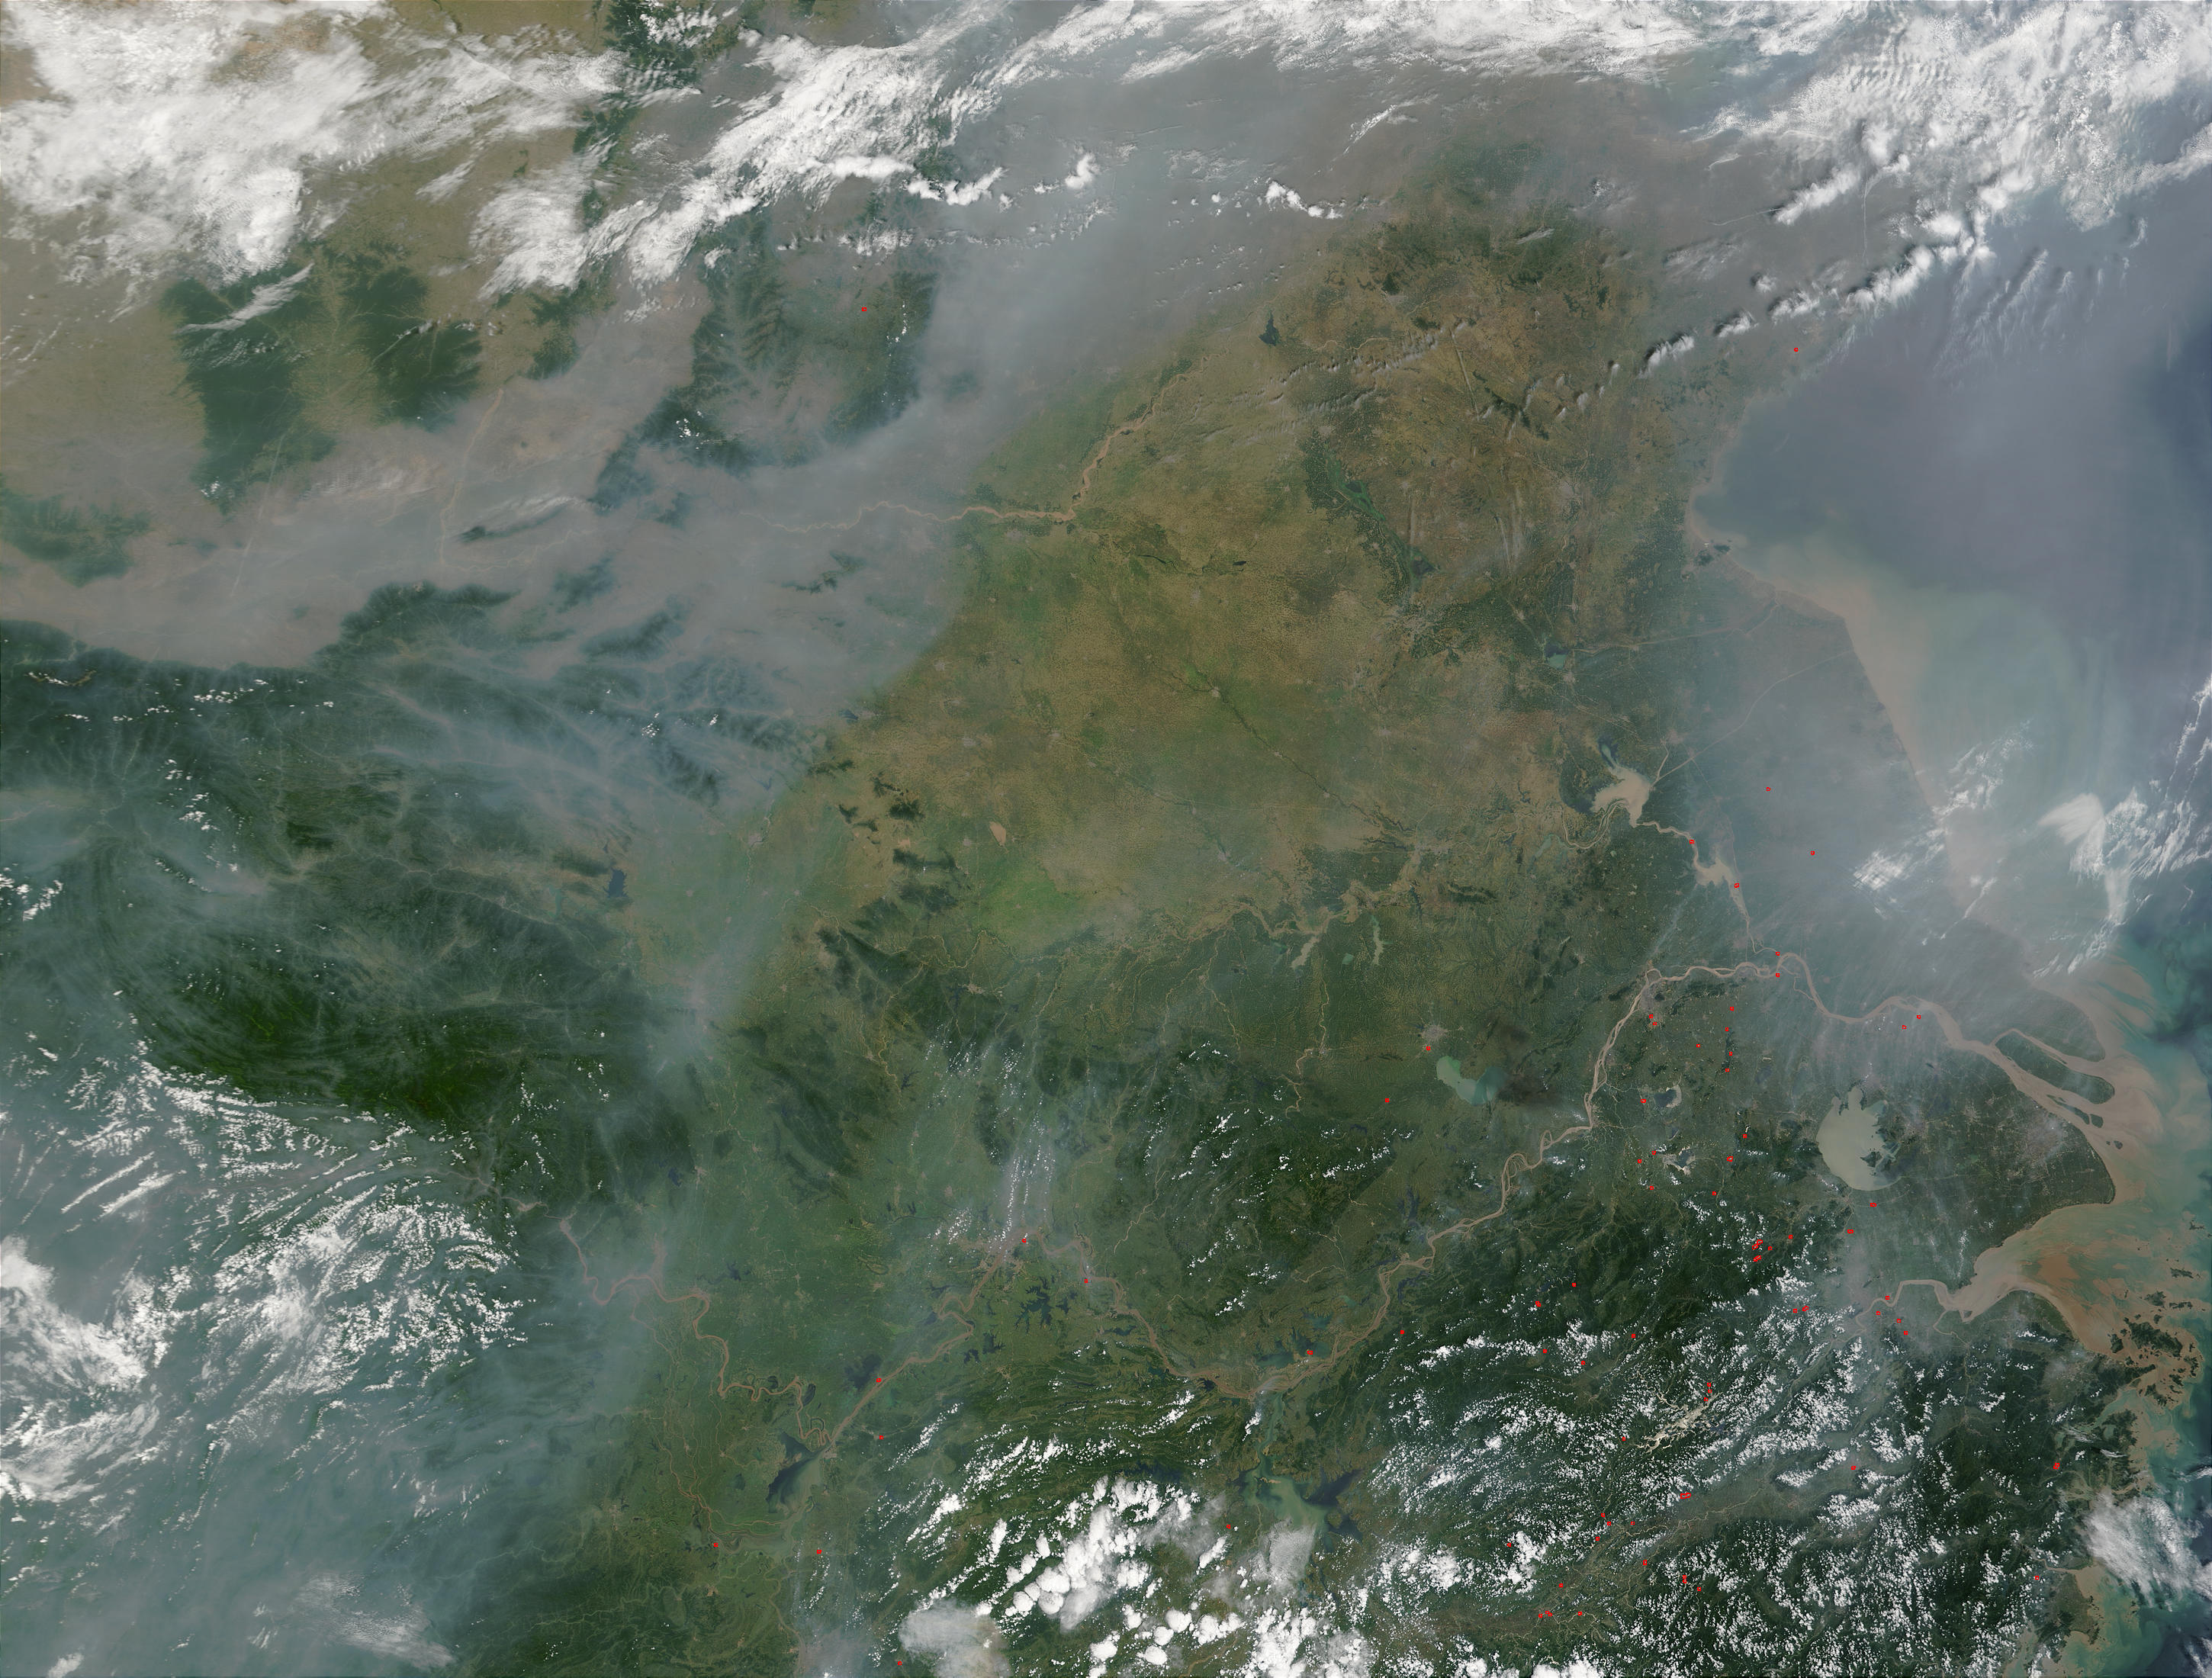 Incendios y humo en China oriental